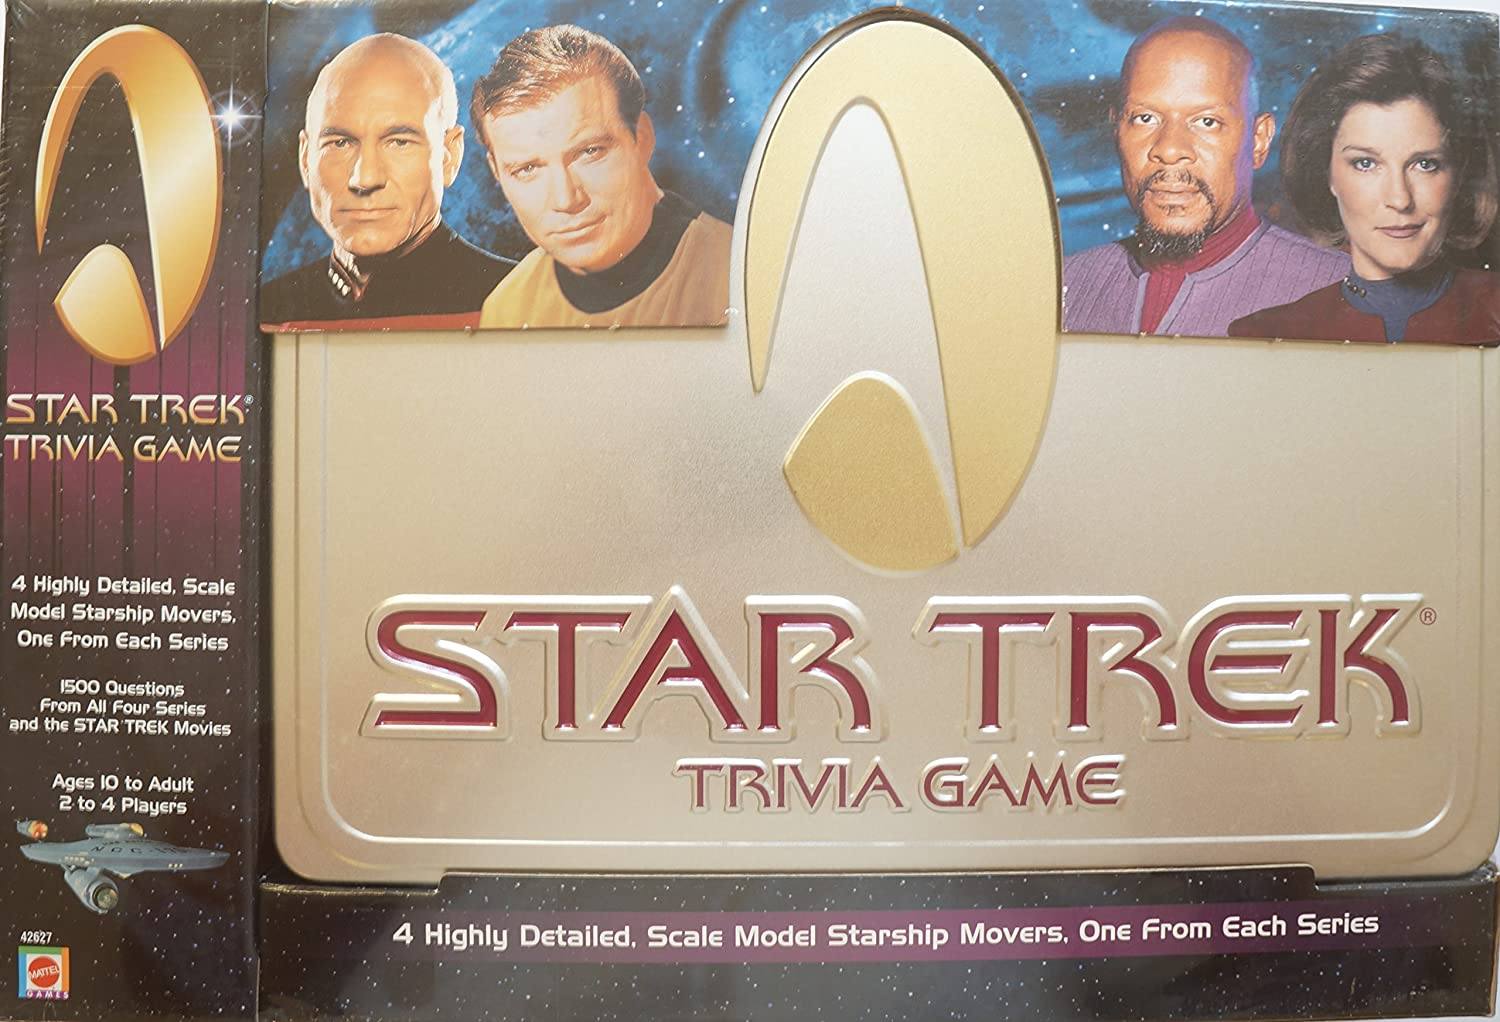 Star Trek Trivia Game in large collectible tin by Mattel